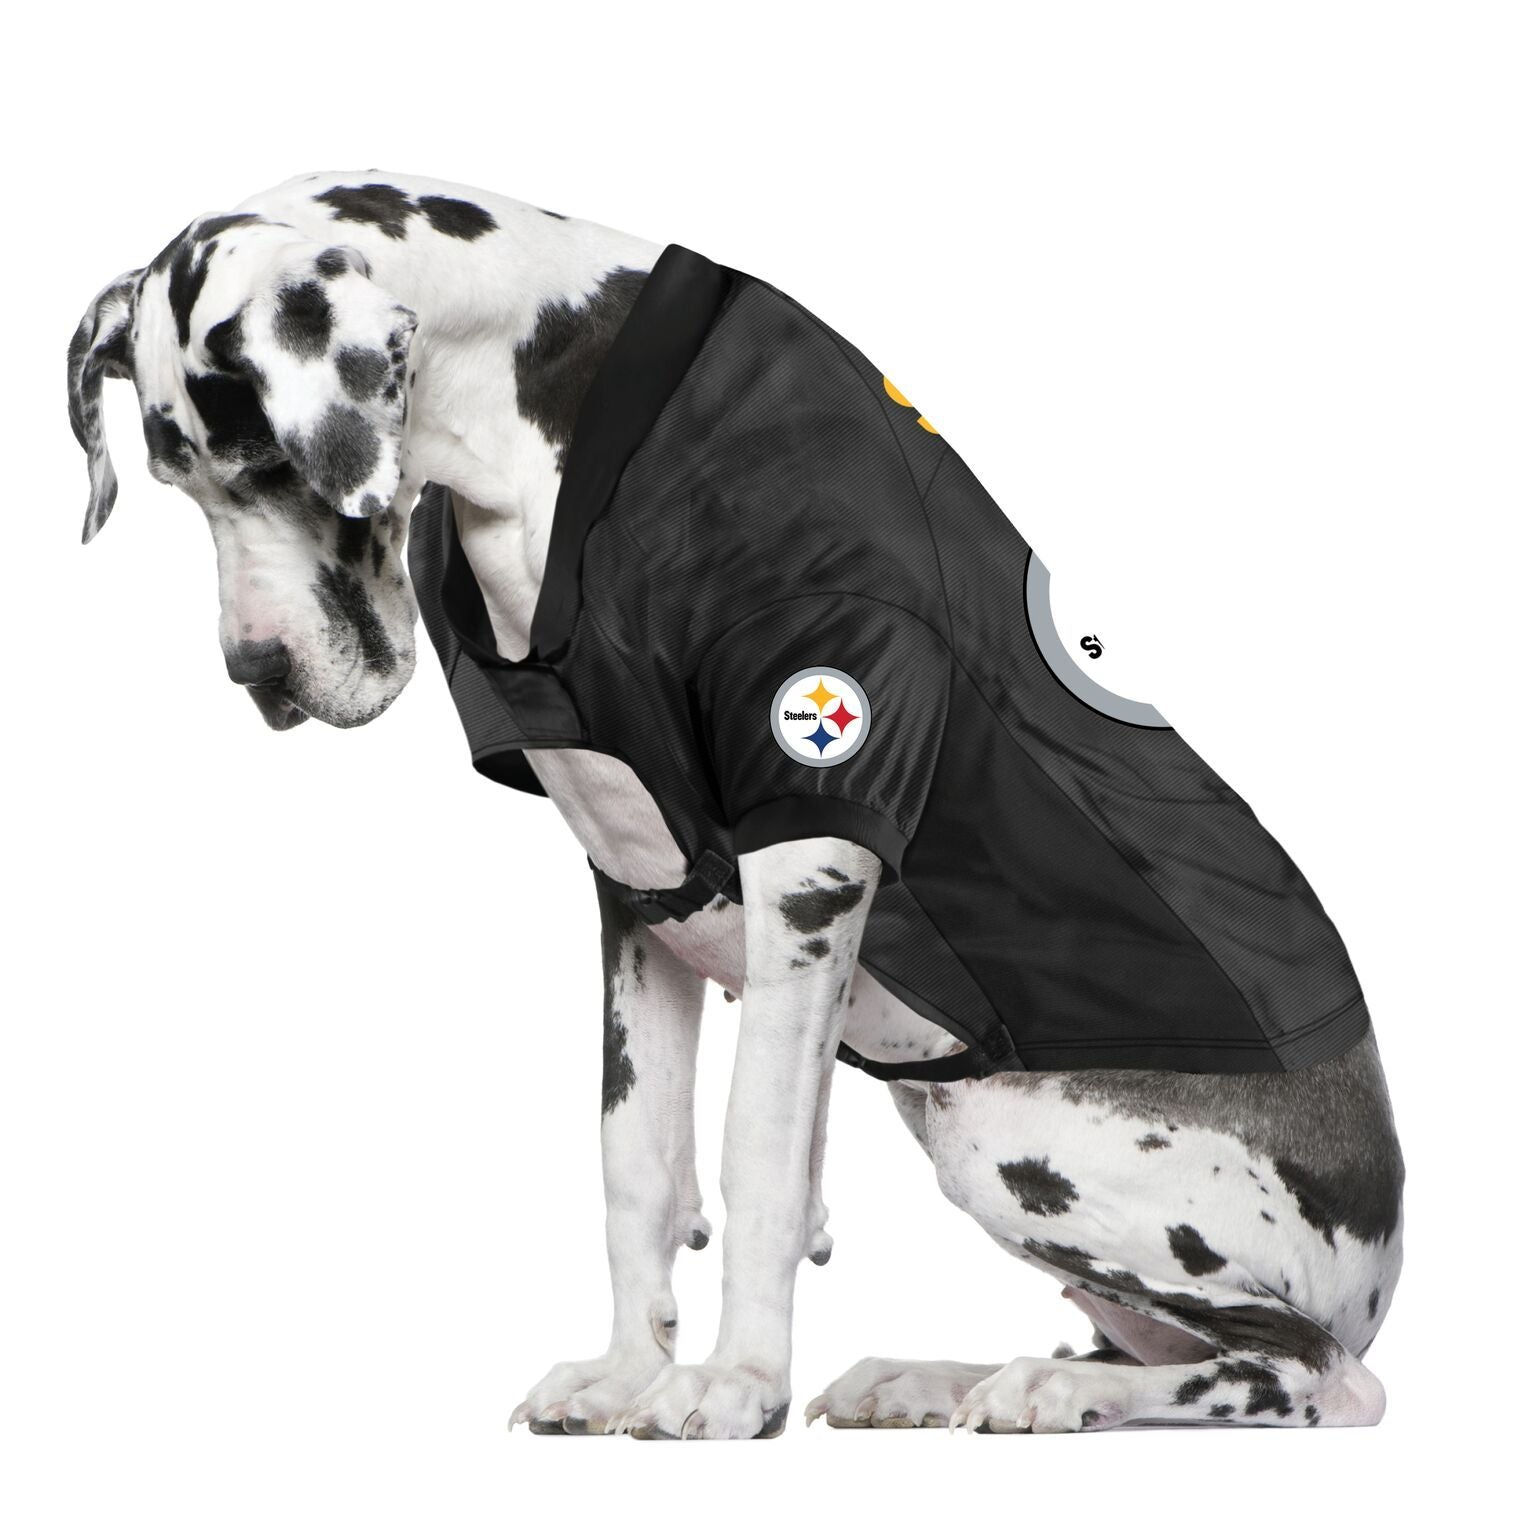 Steelers Fan Jersey For Your Dog